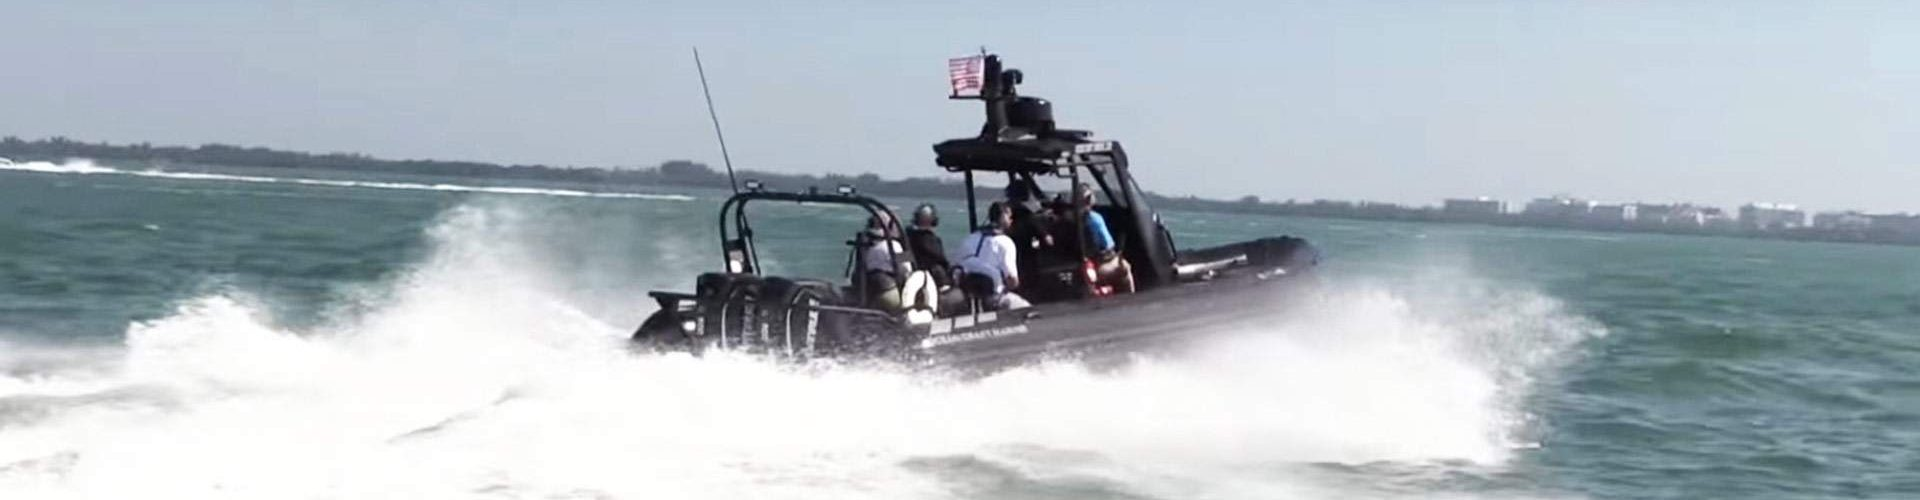 Ocean-Craft-9.5-Meter-High-Speed-Vessel-Interdiction-RHIB-review-by-BoatTest